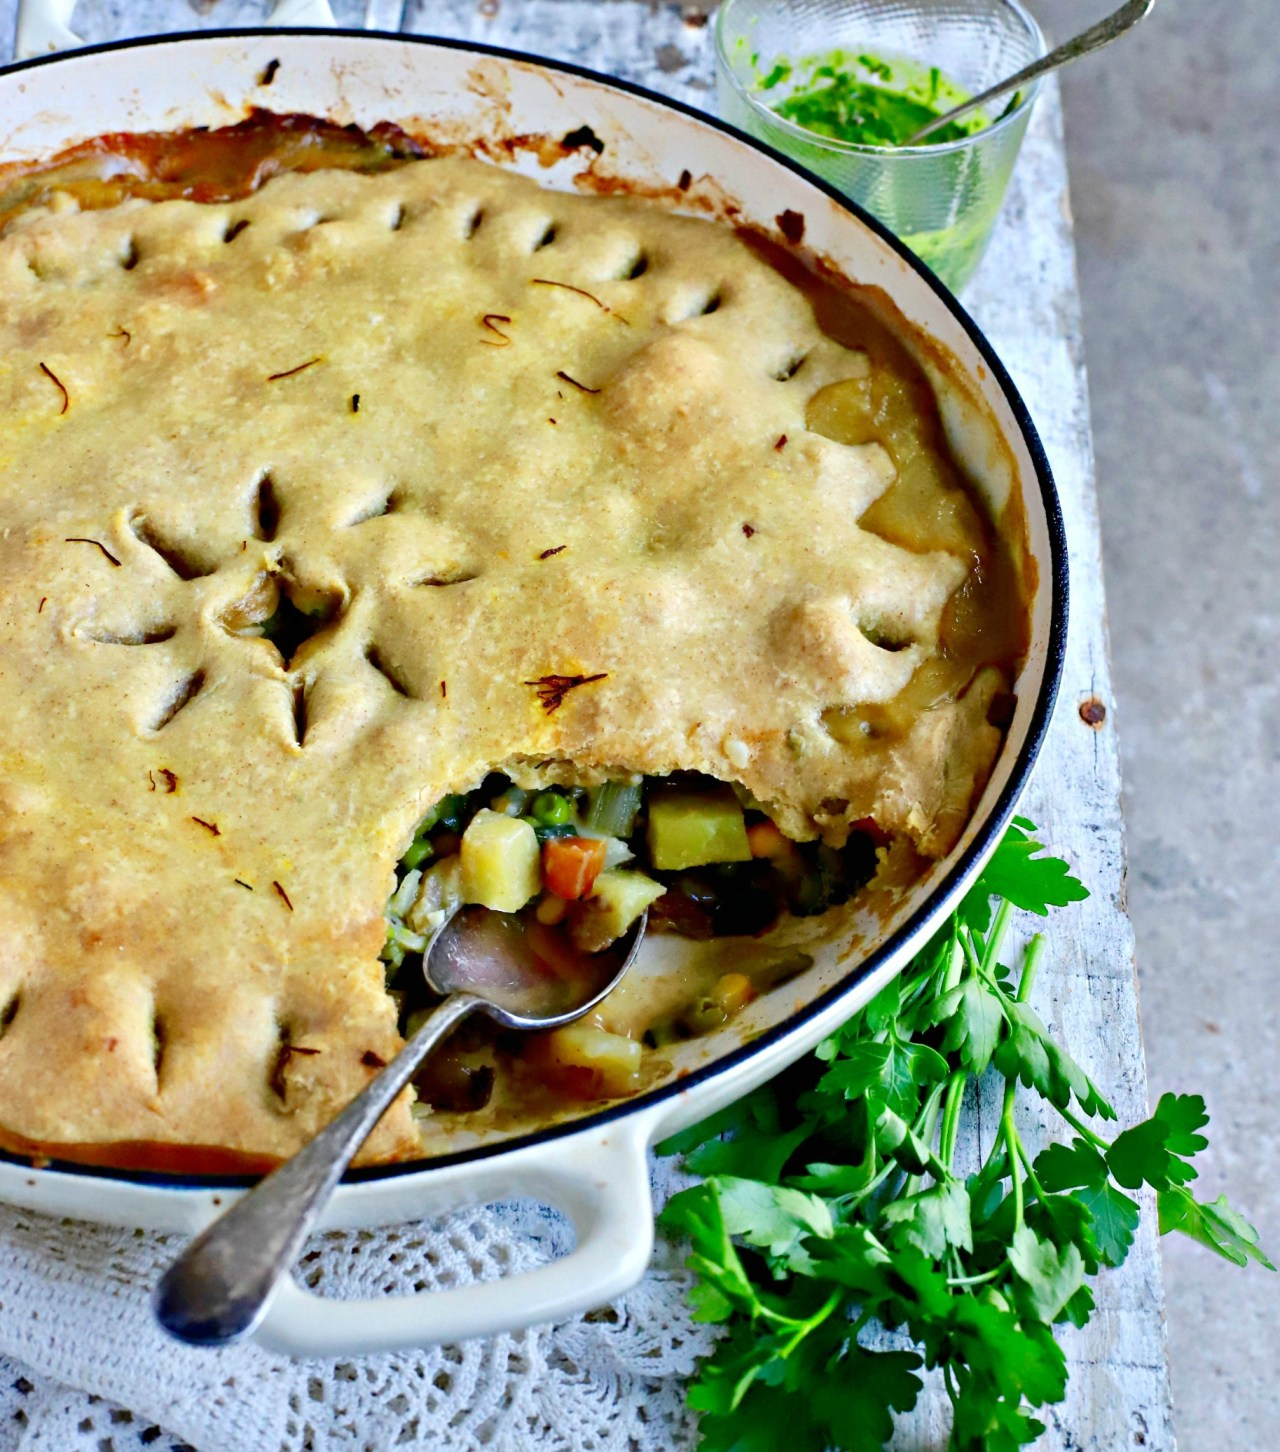 Vegetable pot pie gone a bit fancy with saffron, porcini mushrooms and an olive oil crust. This #vegan, weekend family #food #recipe will remind you of pot pies of yore, but without the saturated fat. #potpie #familyrecipe #vegetables #vegetarian #baking